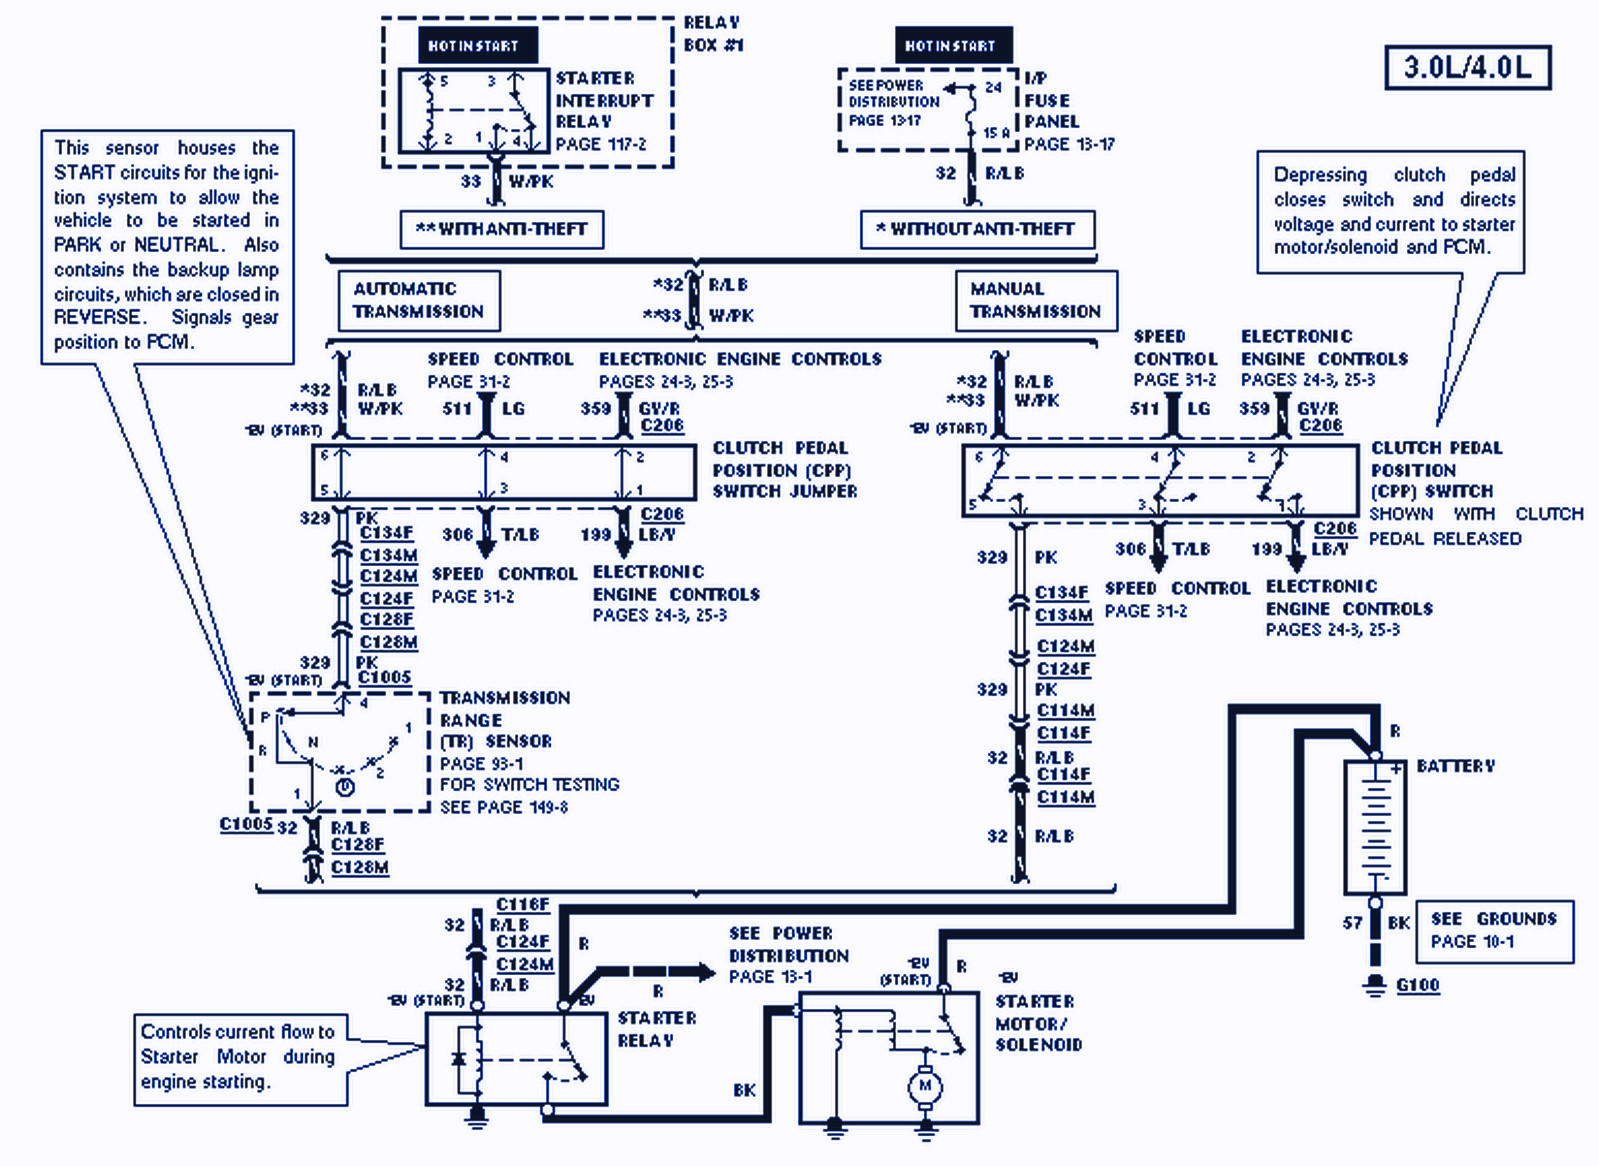 1995 ford e350 wiring diagram simple wiring diagram rh david huggett co uk ford ranger 1999 [ 1599 x 1166 Pixel ]